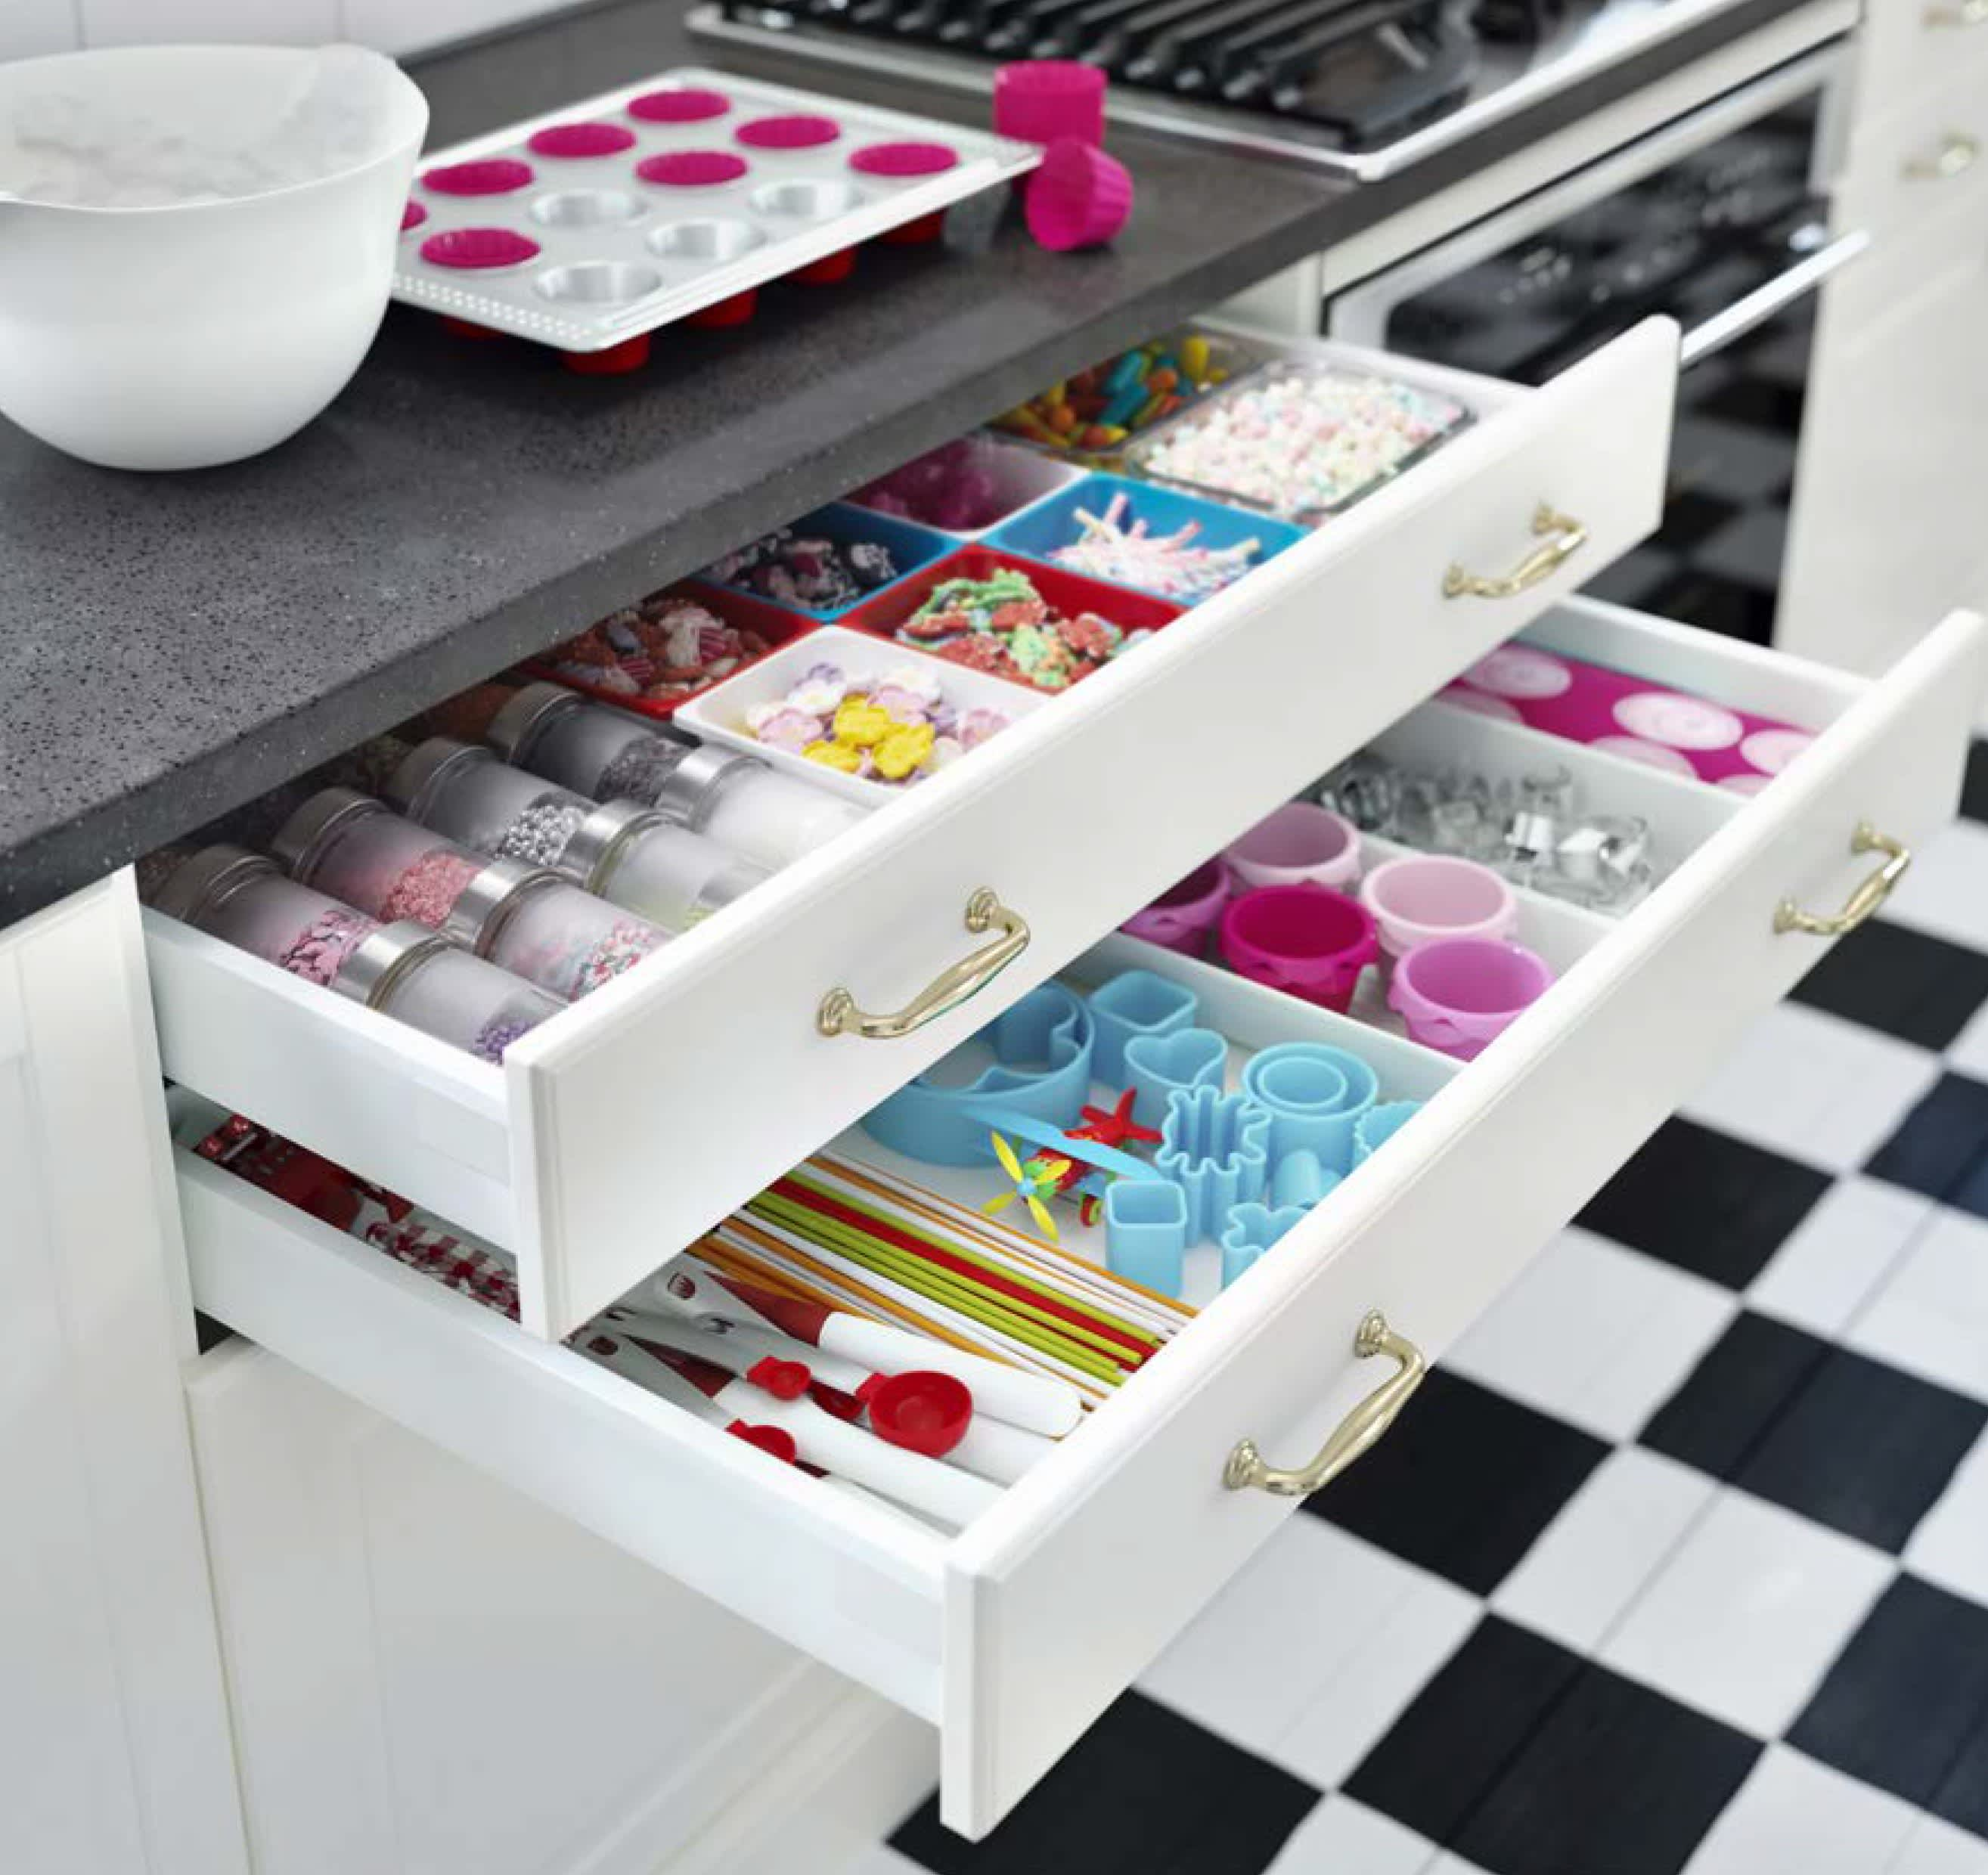 Kitchen Cabinets Prices: IKEA's New SEKTION Cabinets: Sizes, Prices & Photos!